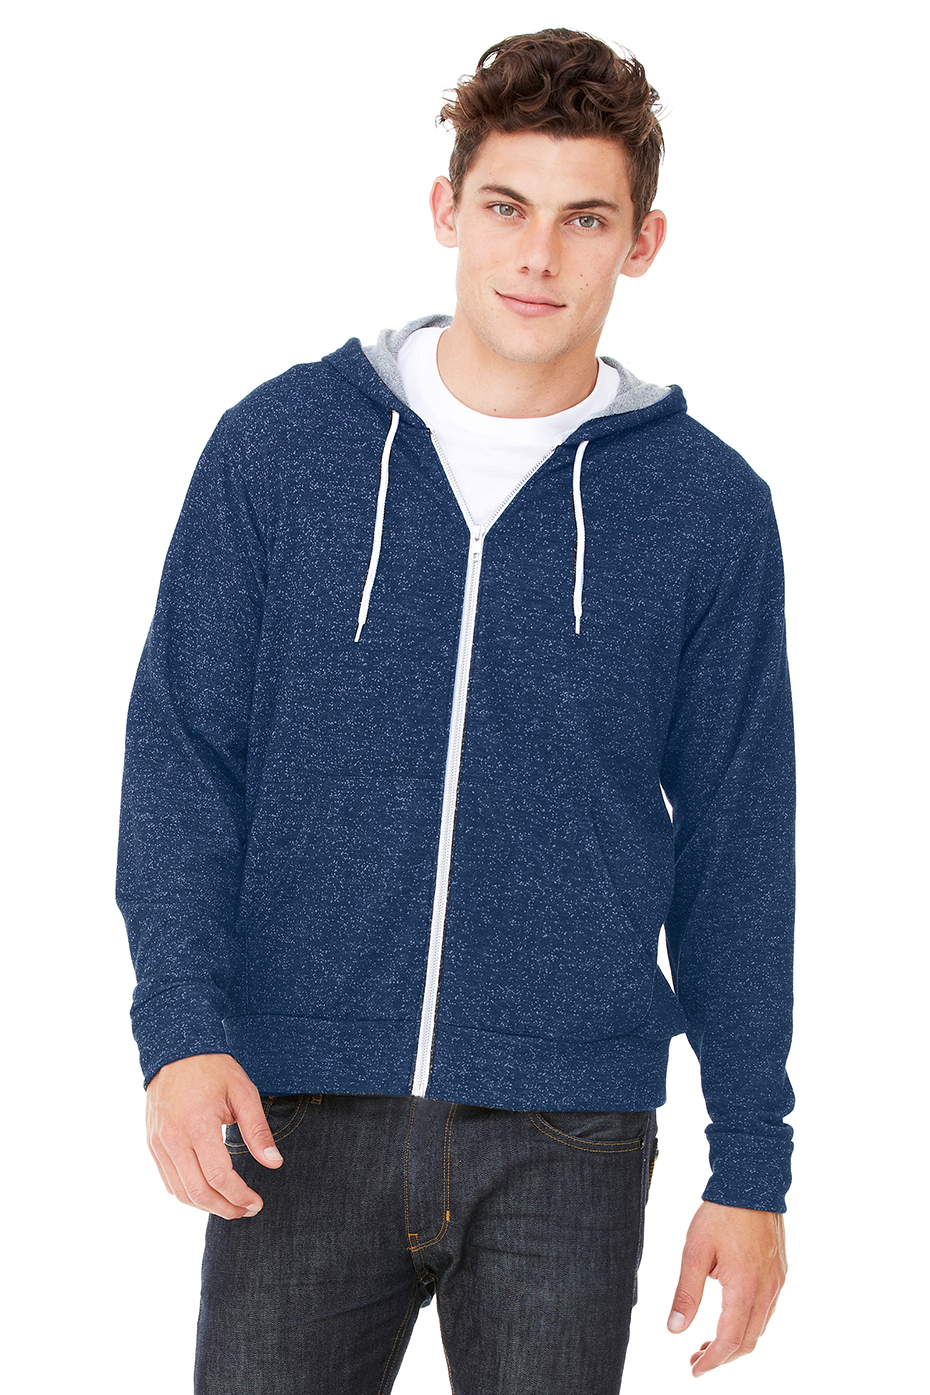 Blue Flamming Nike Hoodie W/ White Strings | Ⓡ